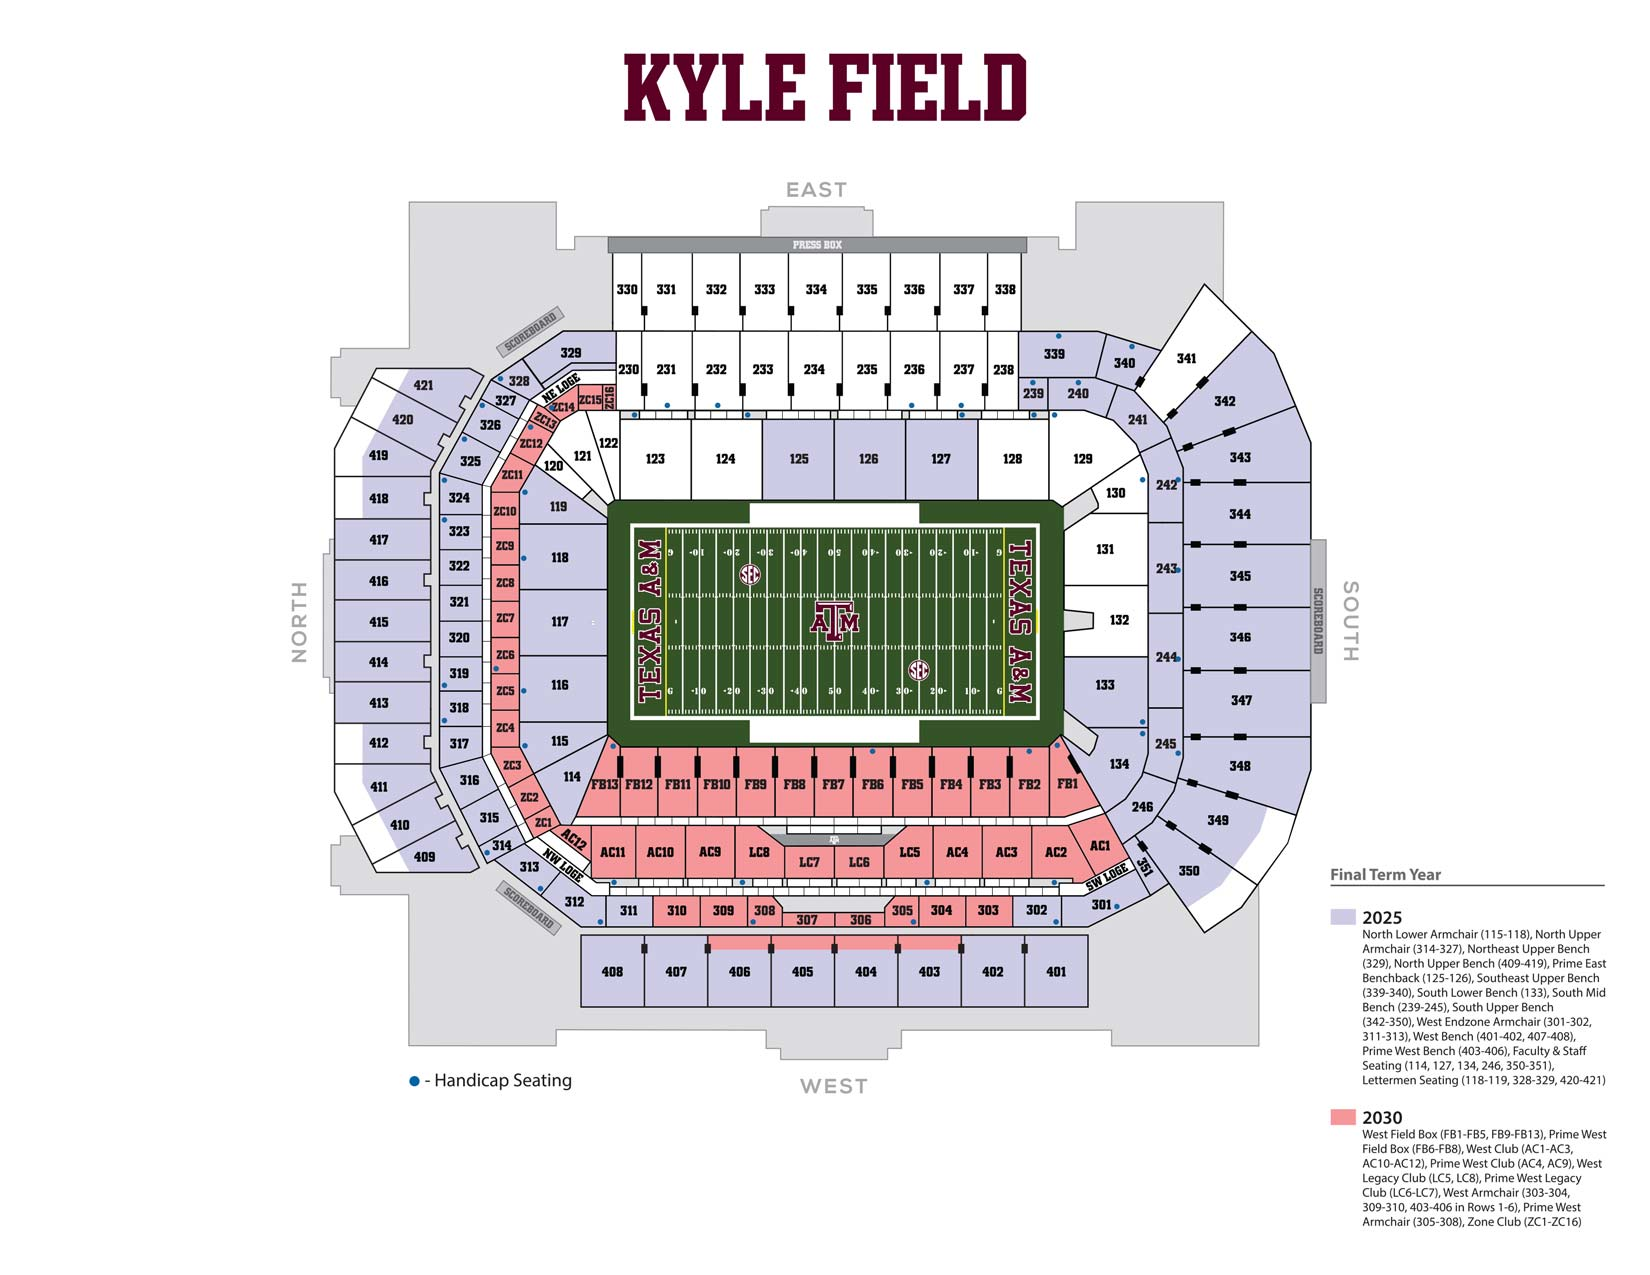 kyle field final term years graphic